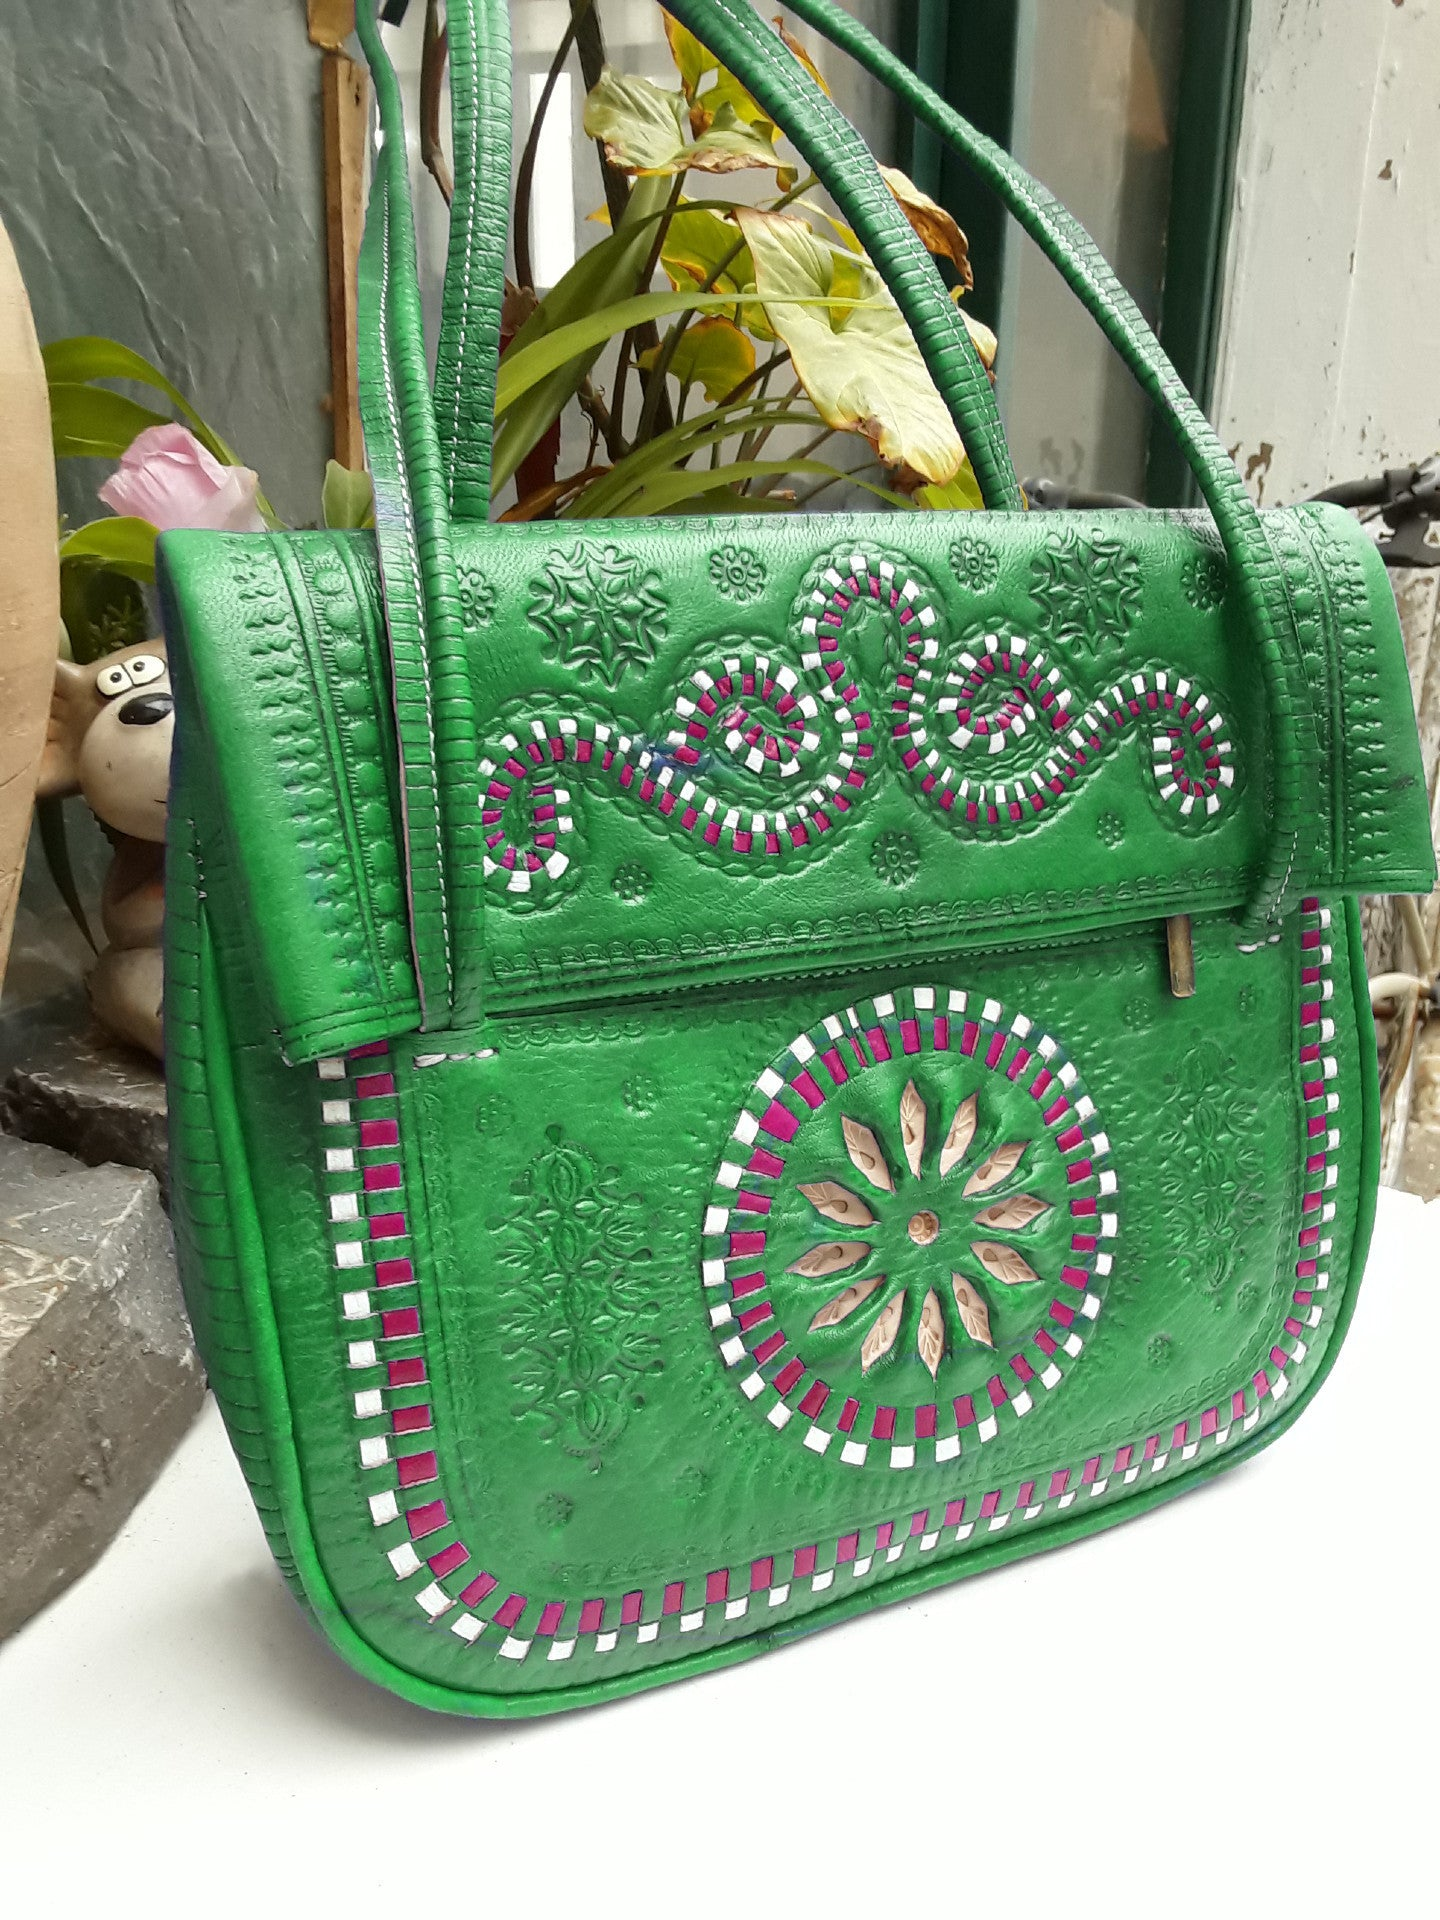 Jeblia Leather Tote Bag - Embroidered - Green